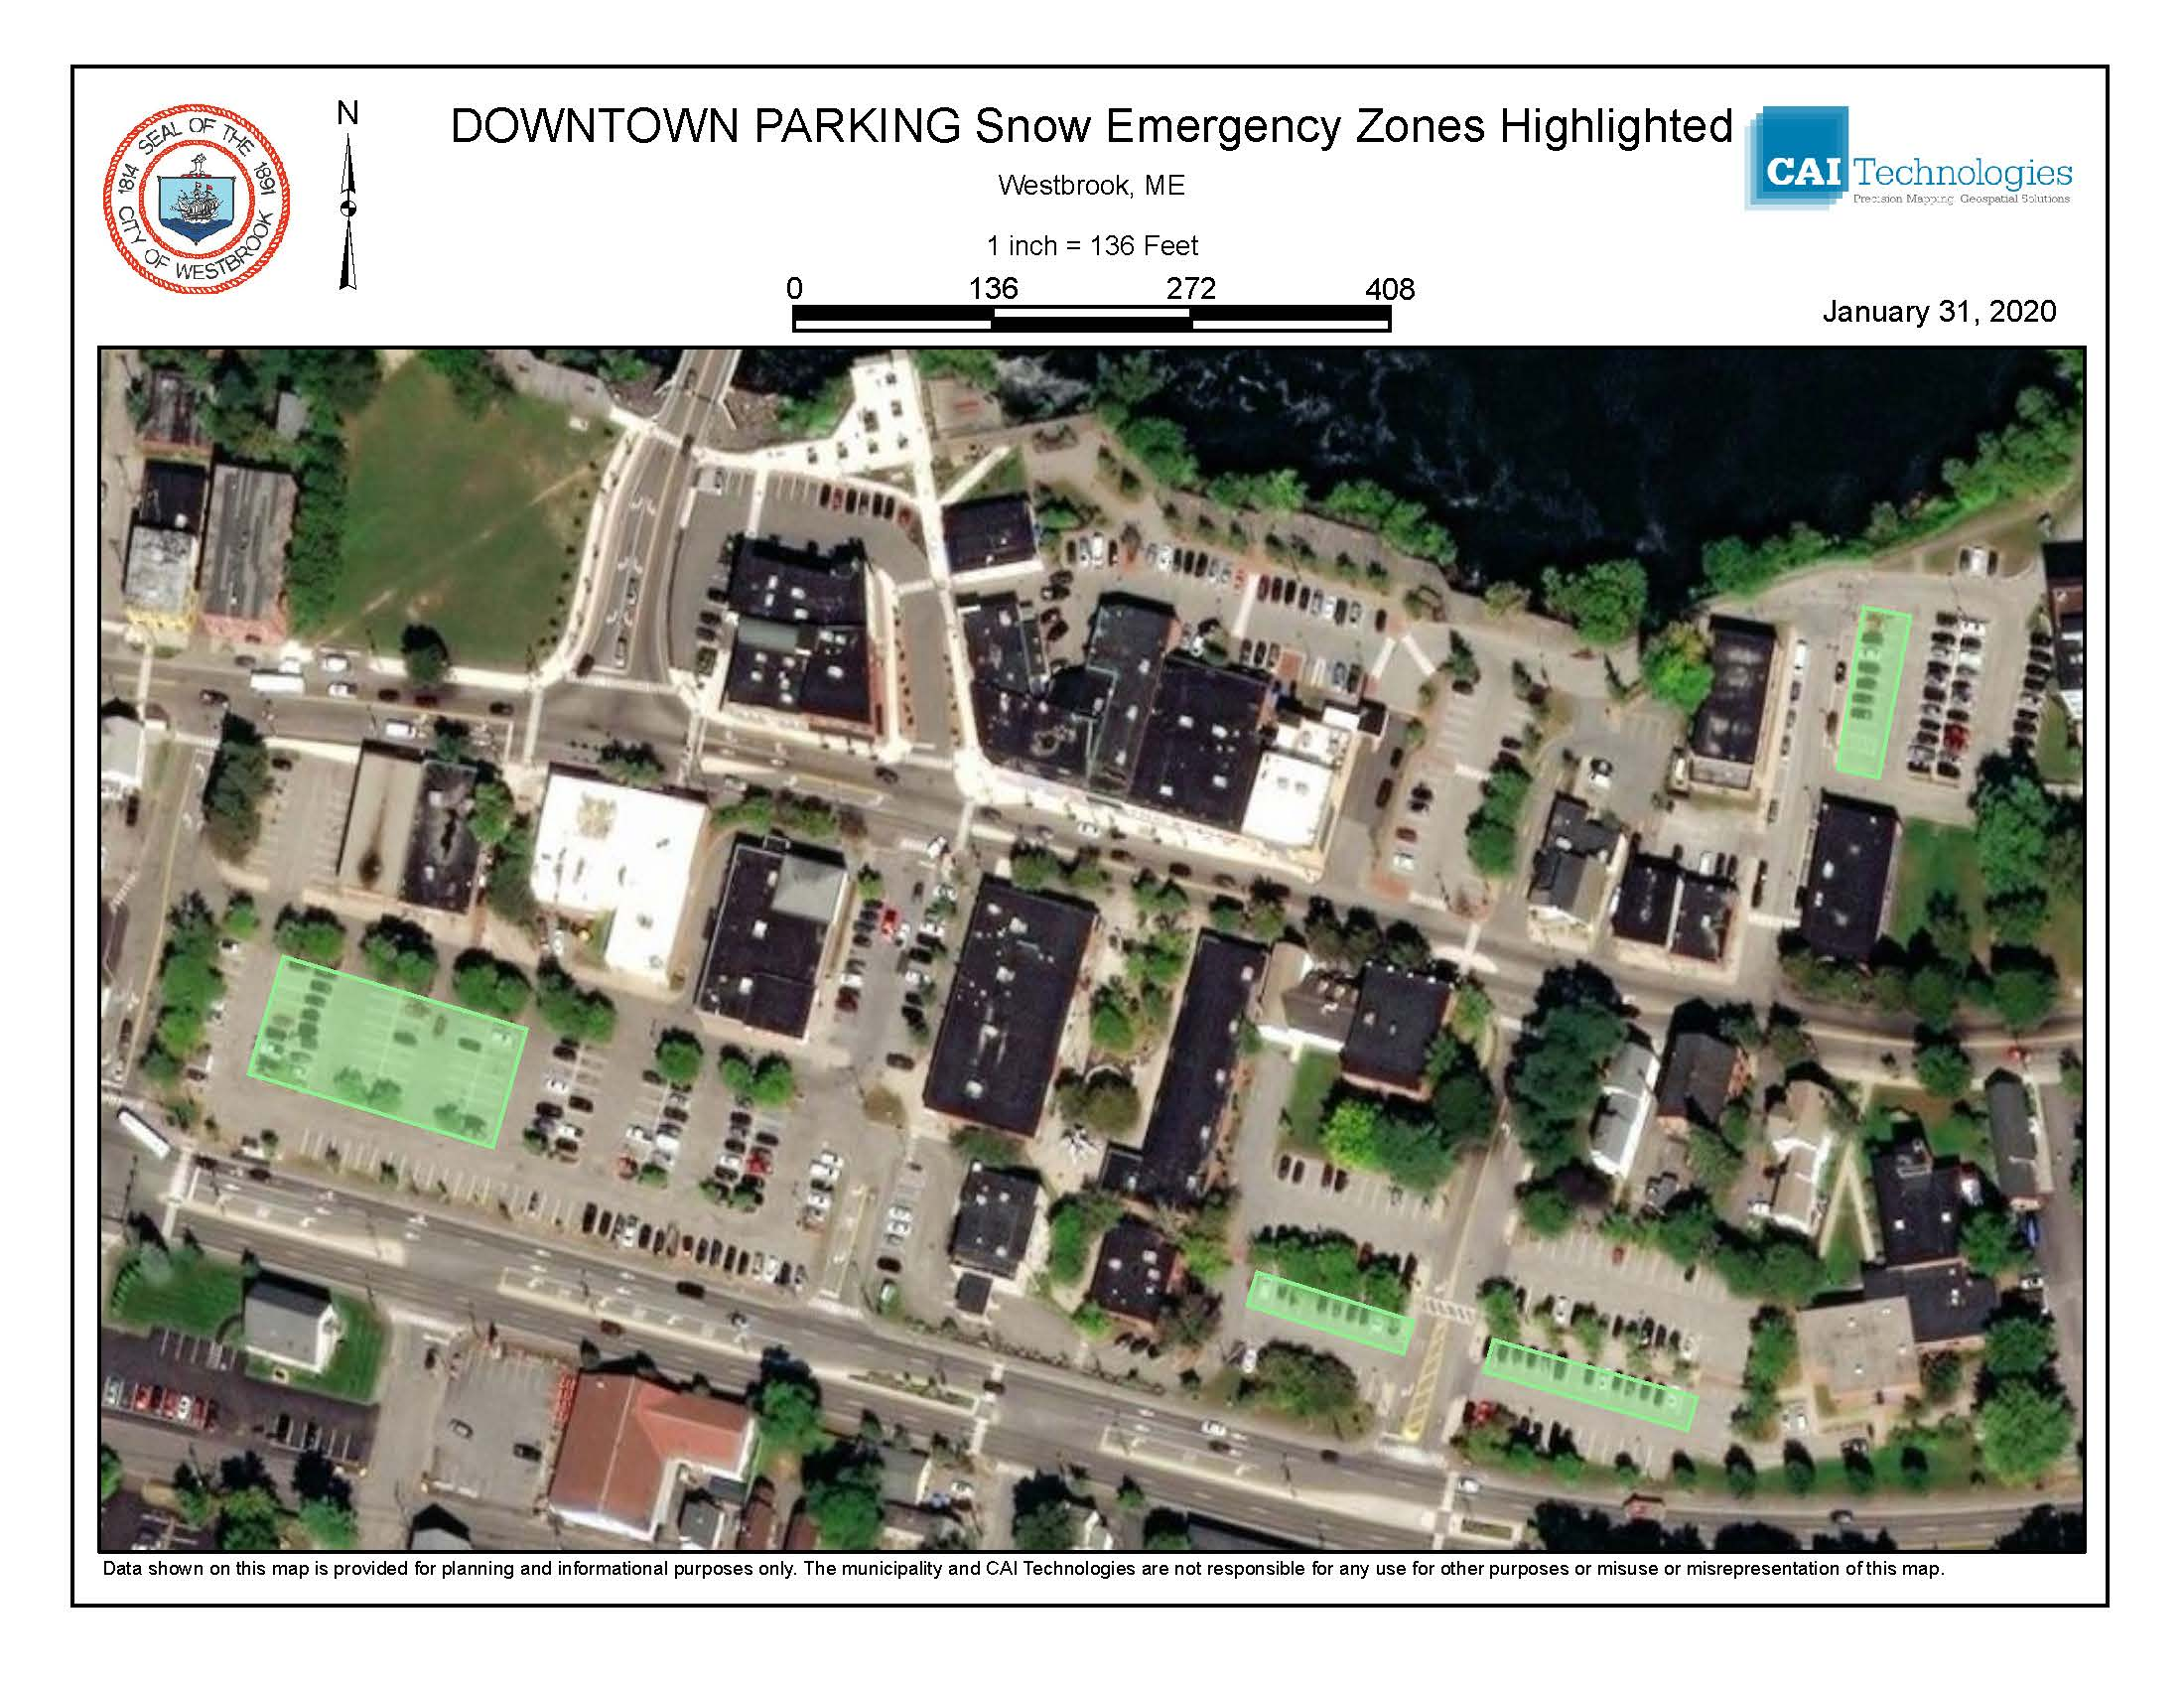 Downtown Parking overview with snow zones highlighted